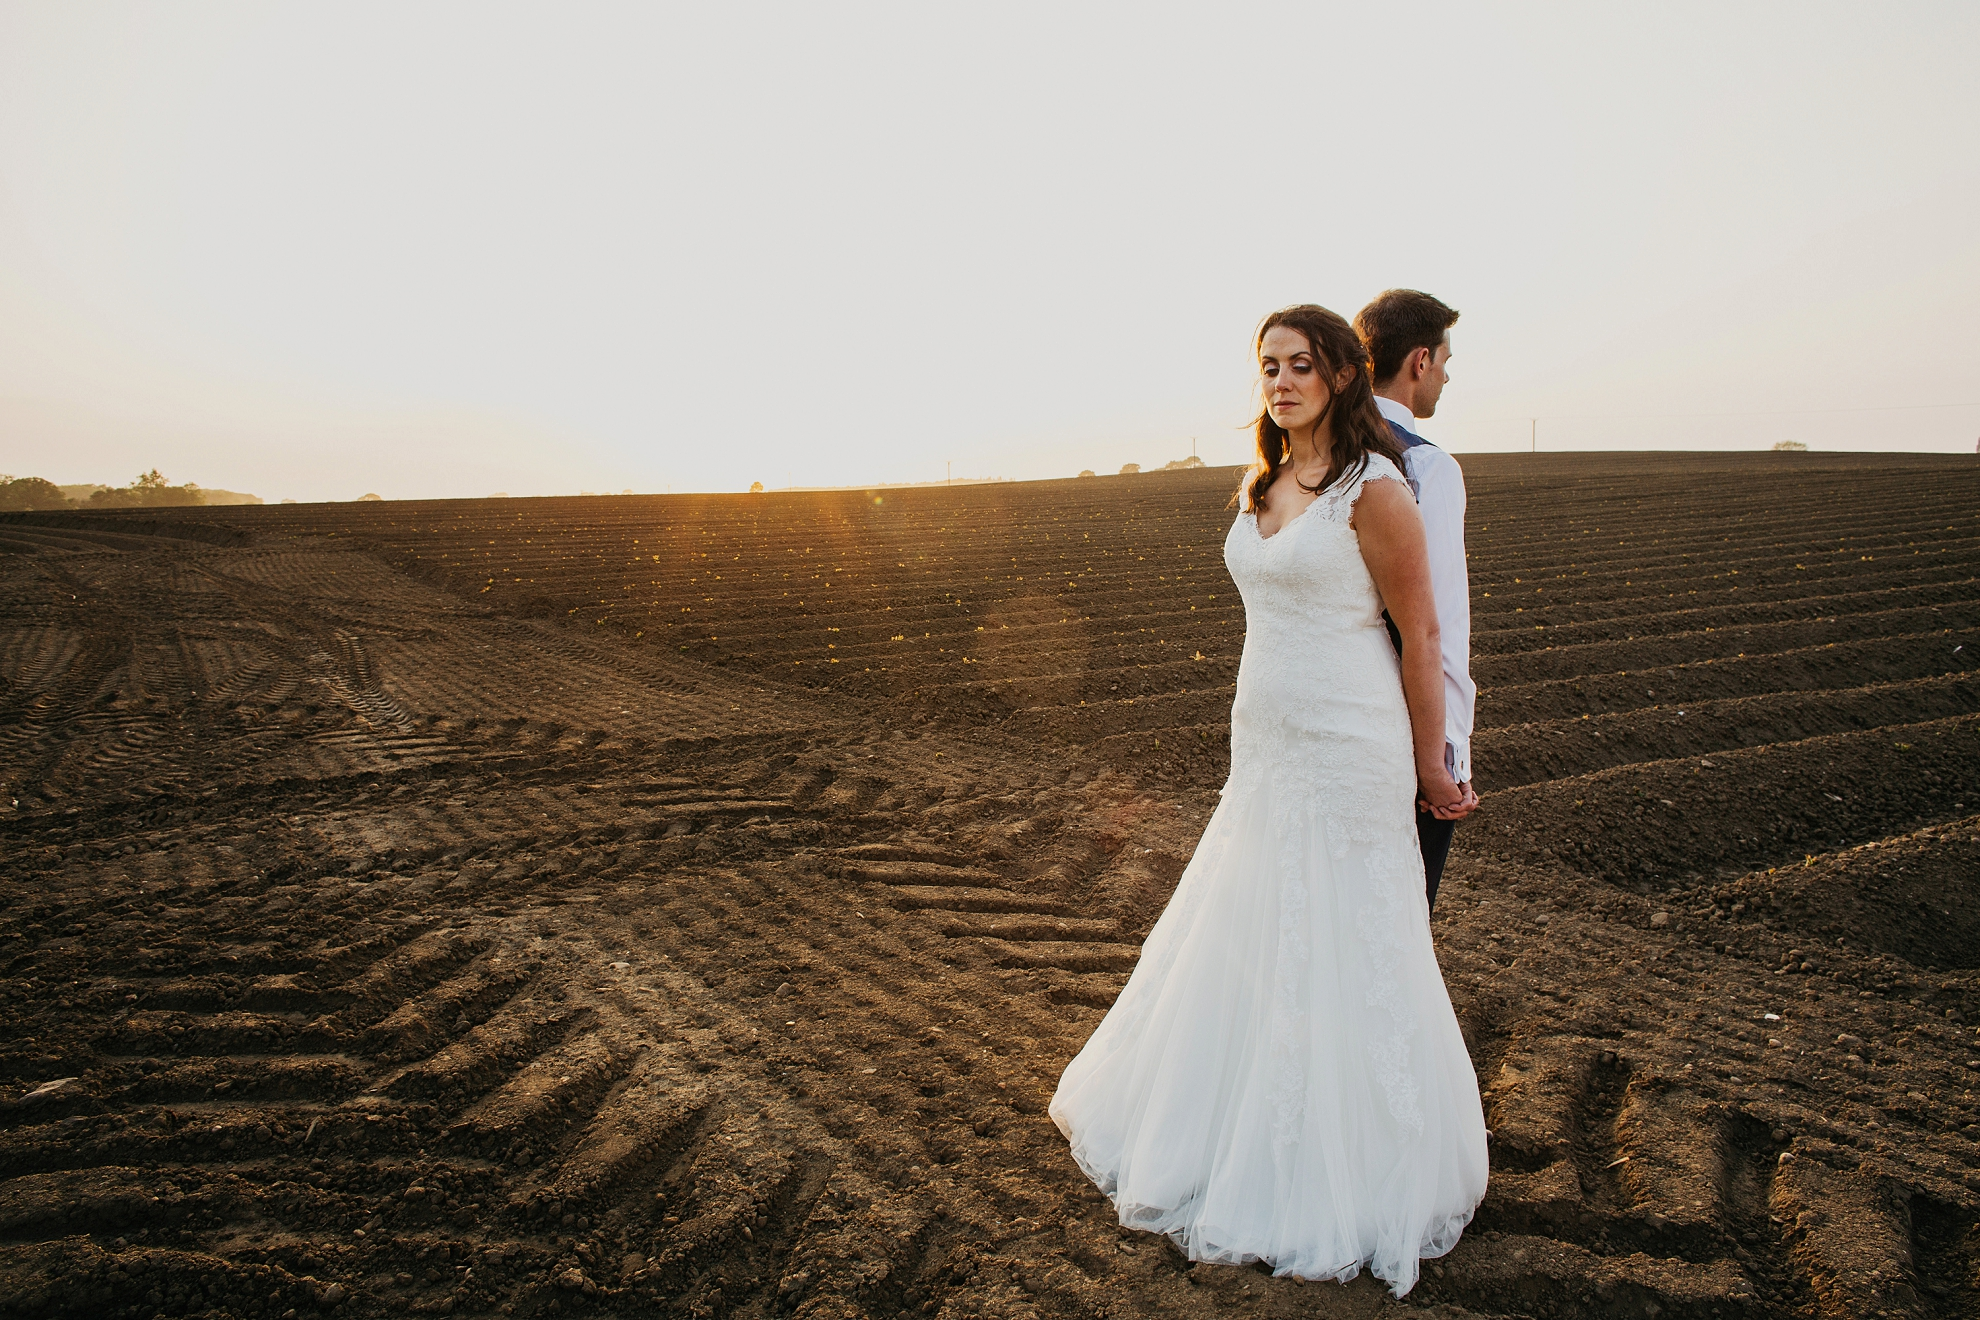 Priory Cottages weddings